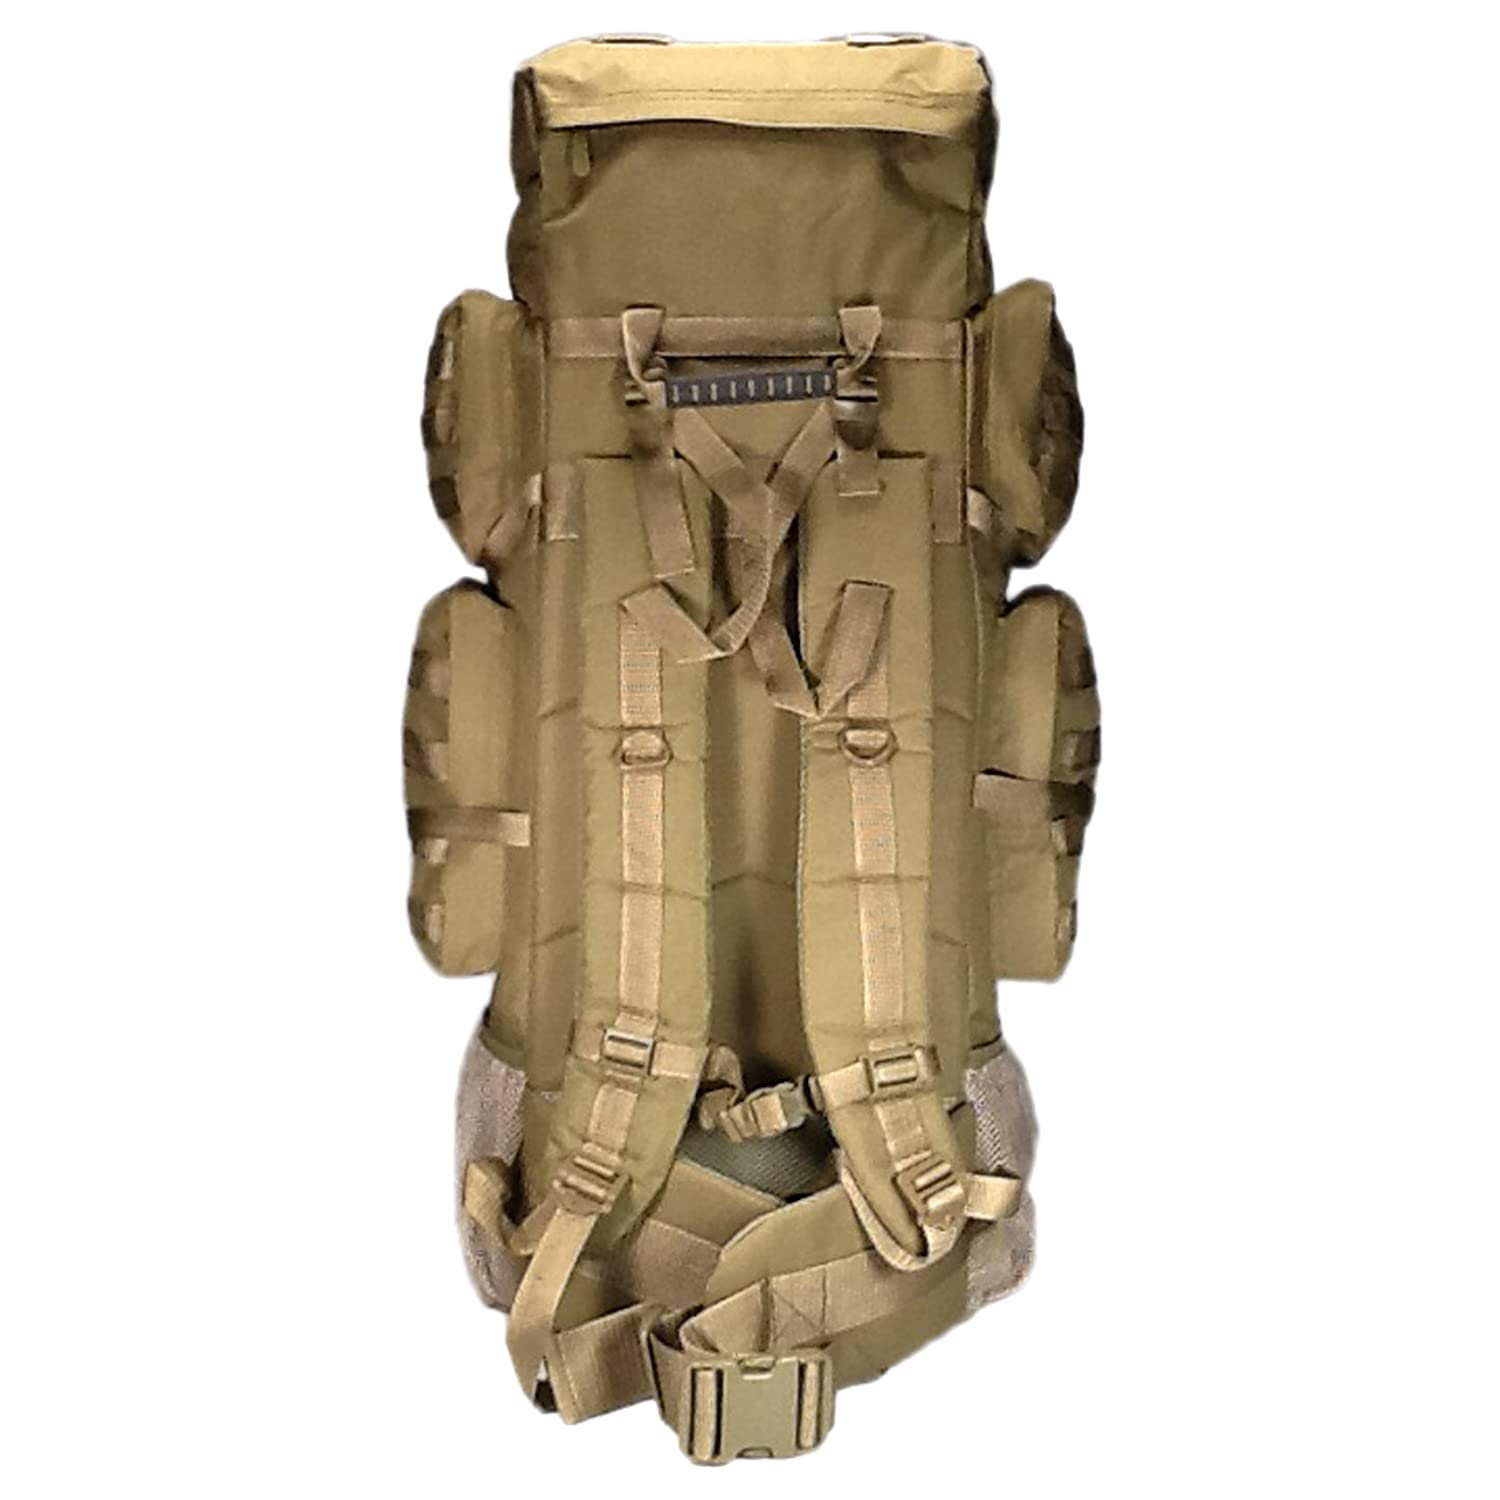 34 5200 cu. in. Tactical Hunting Camping Hiking Backpack THB001 TAN